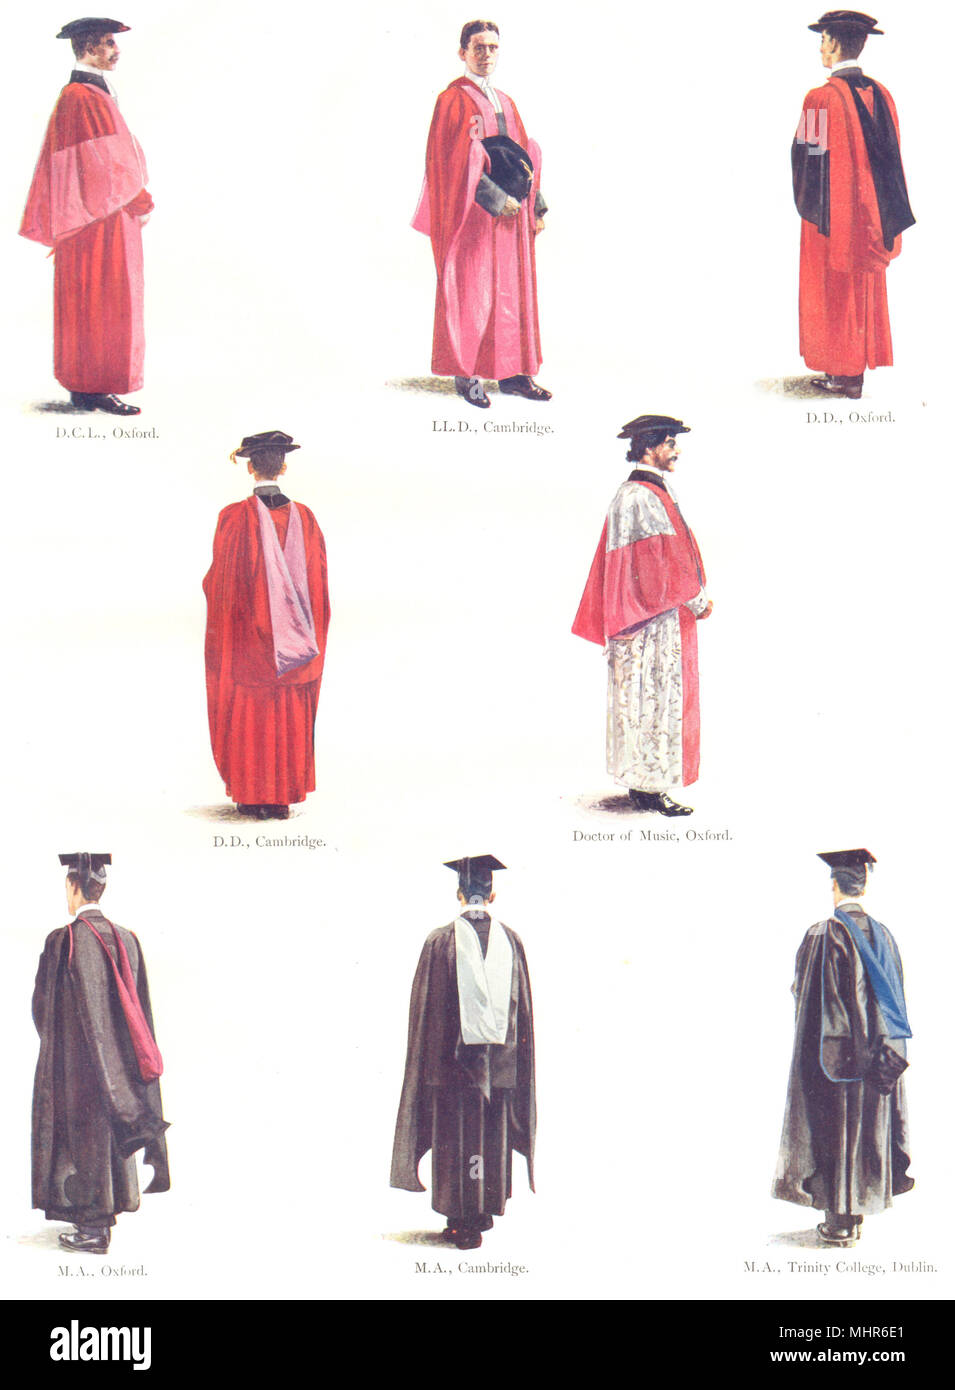 ROBES. Oxford Cambridge Trinity College Dublin. DCL DD Doctor Music LLD MA 1910 - Stock Image